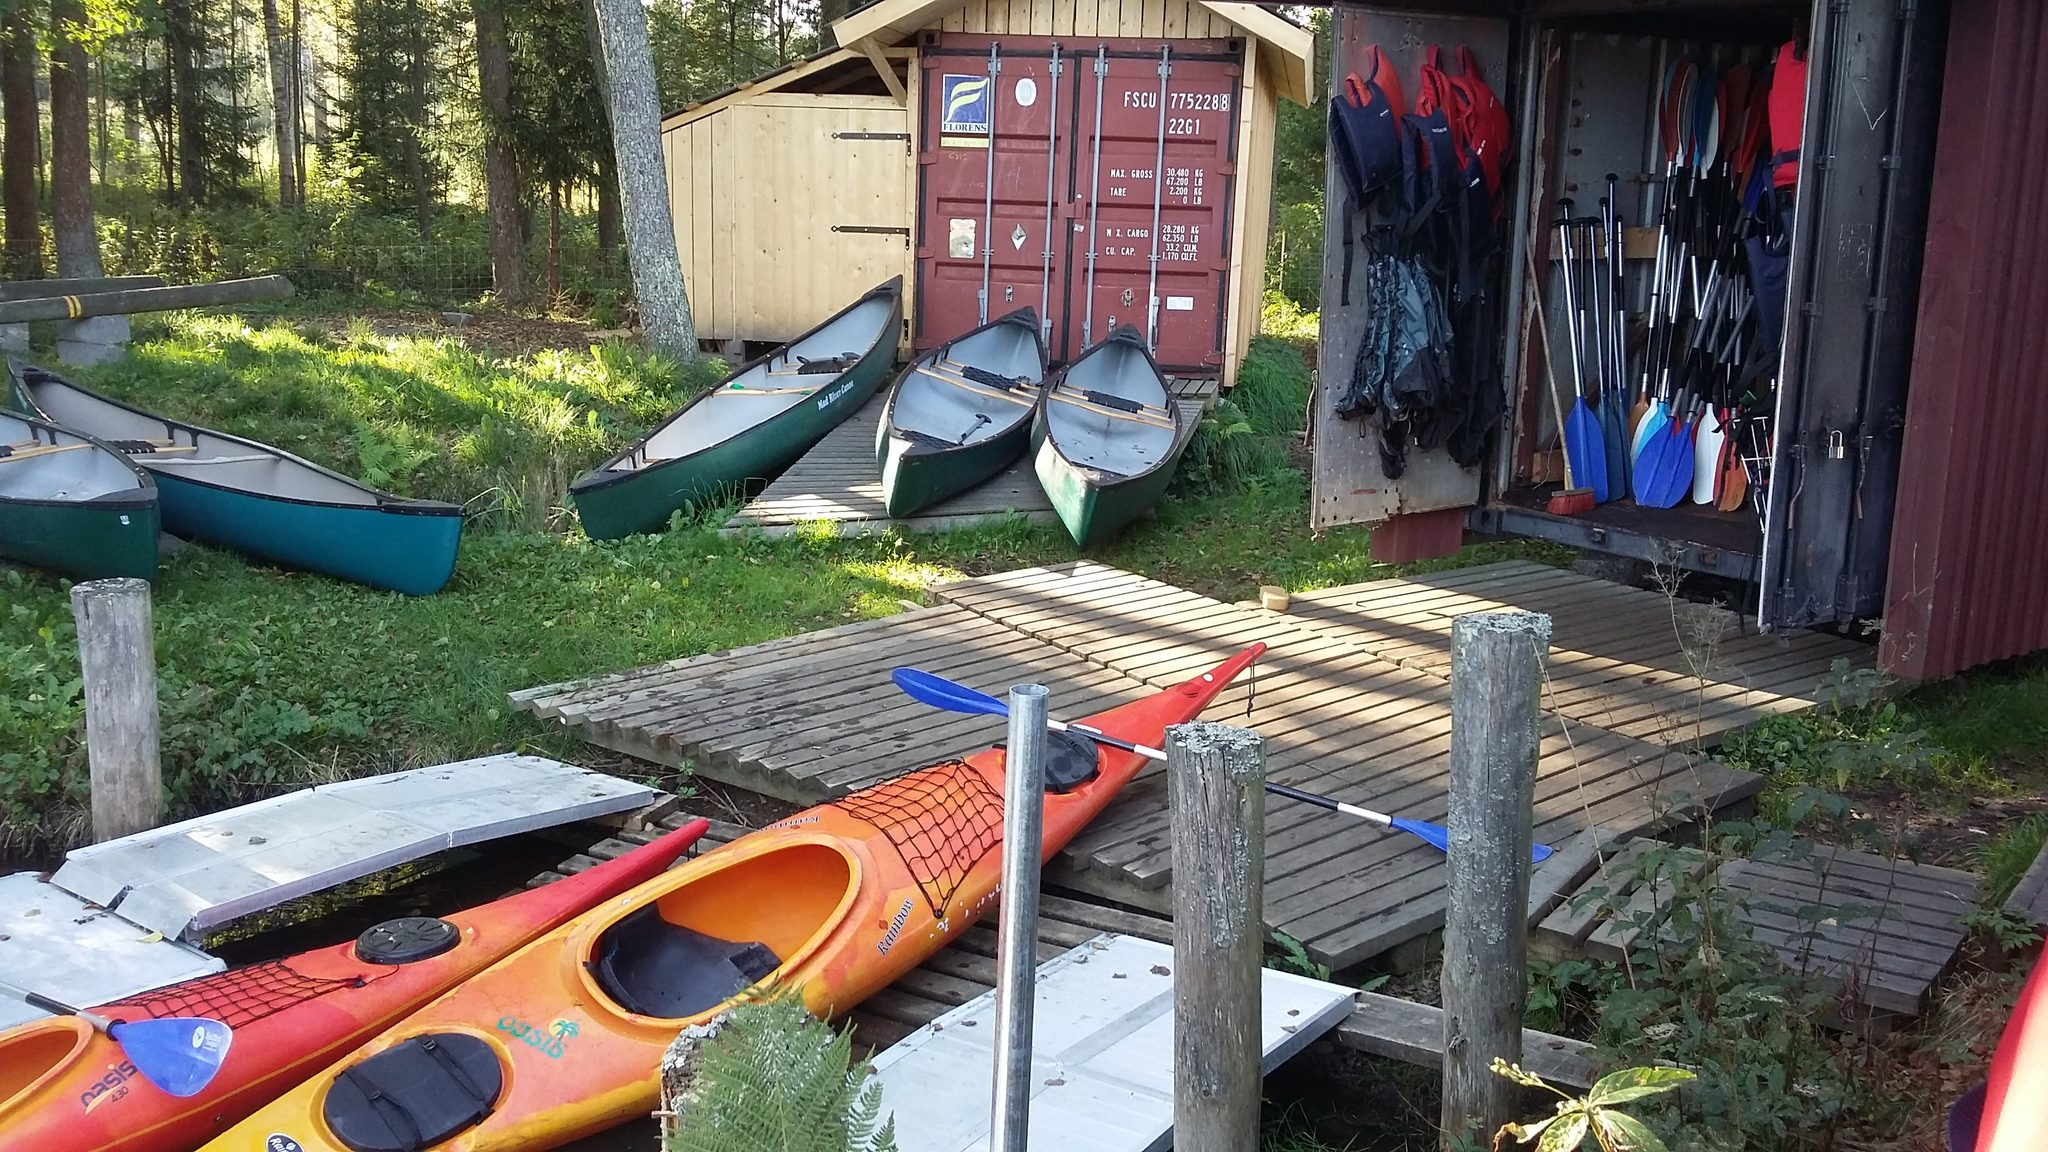 Rental equipment at Siuntio Canoe Center